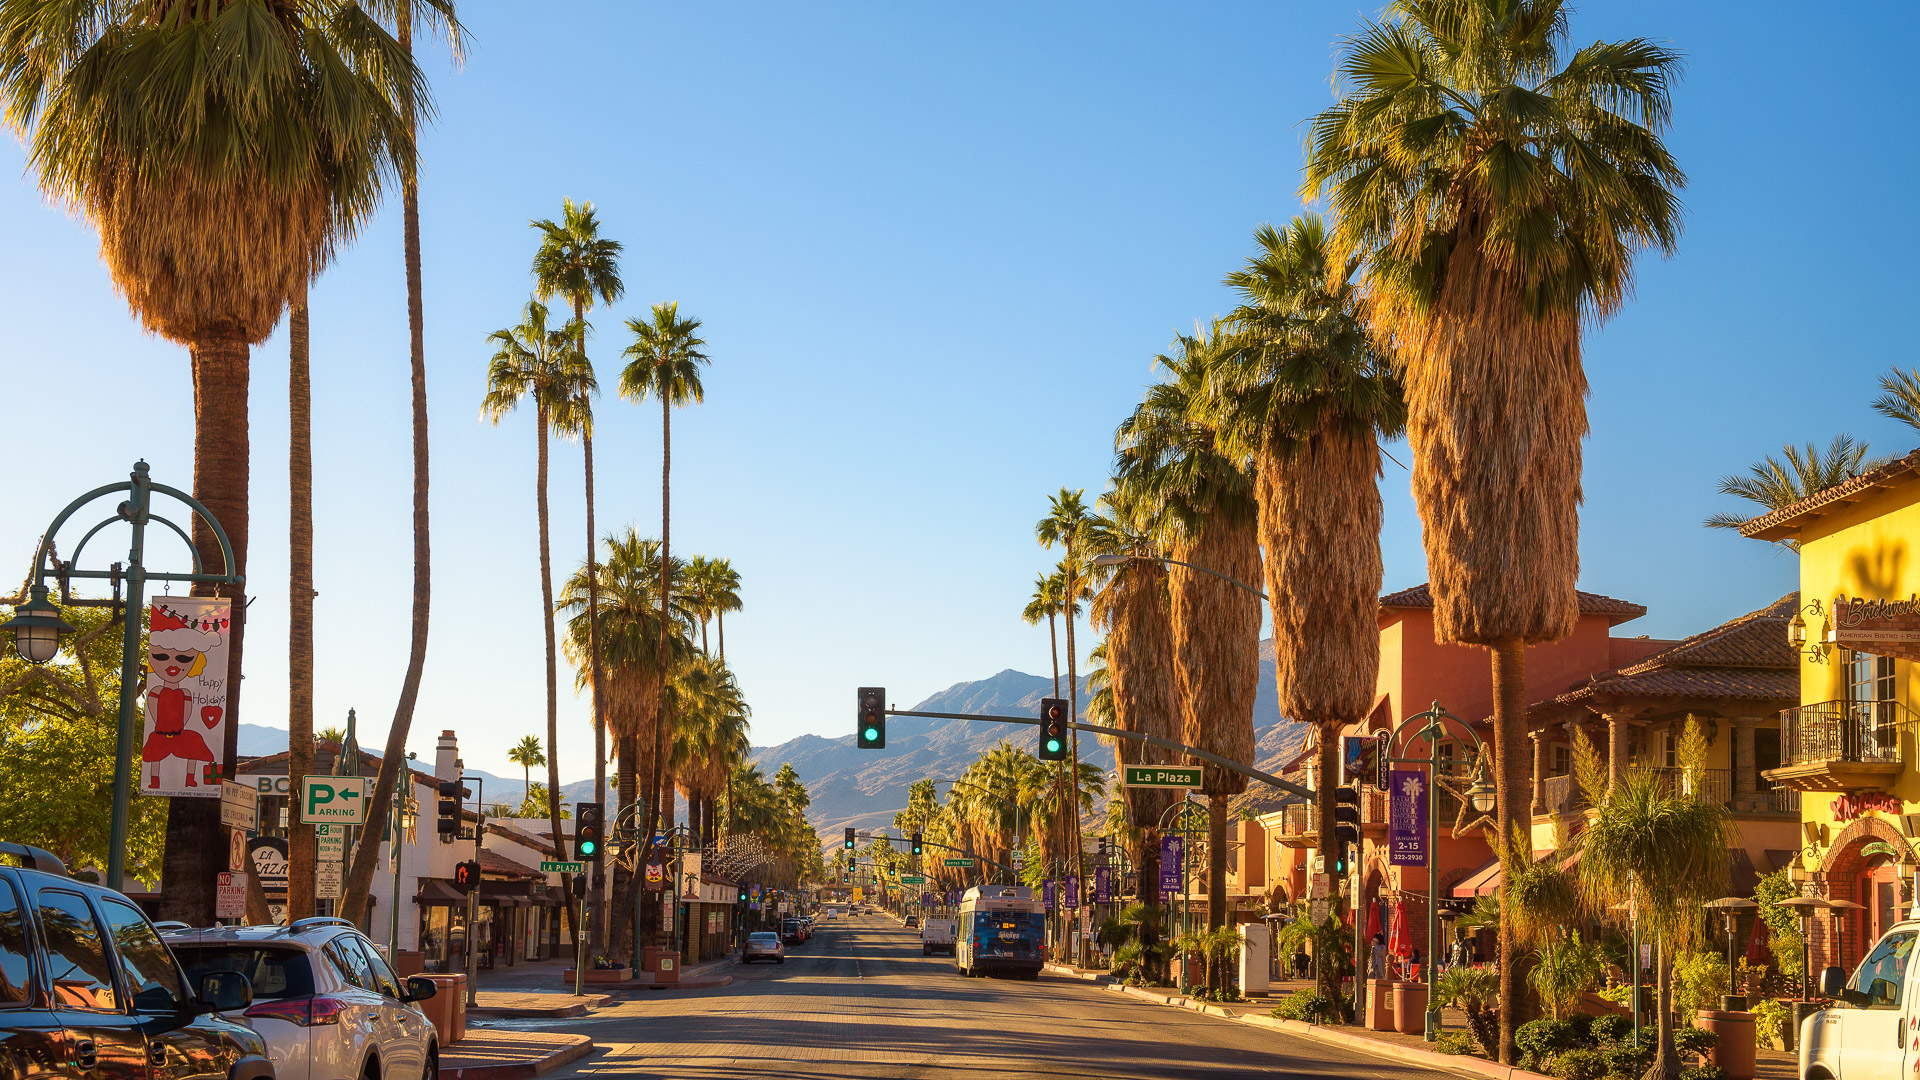 Palm Springs, California, USA - December 27, 2017 : Scenic street view of Palm Springs at sunrise.